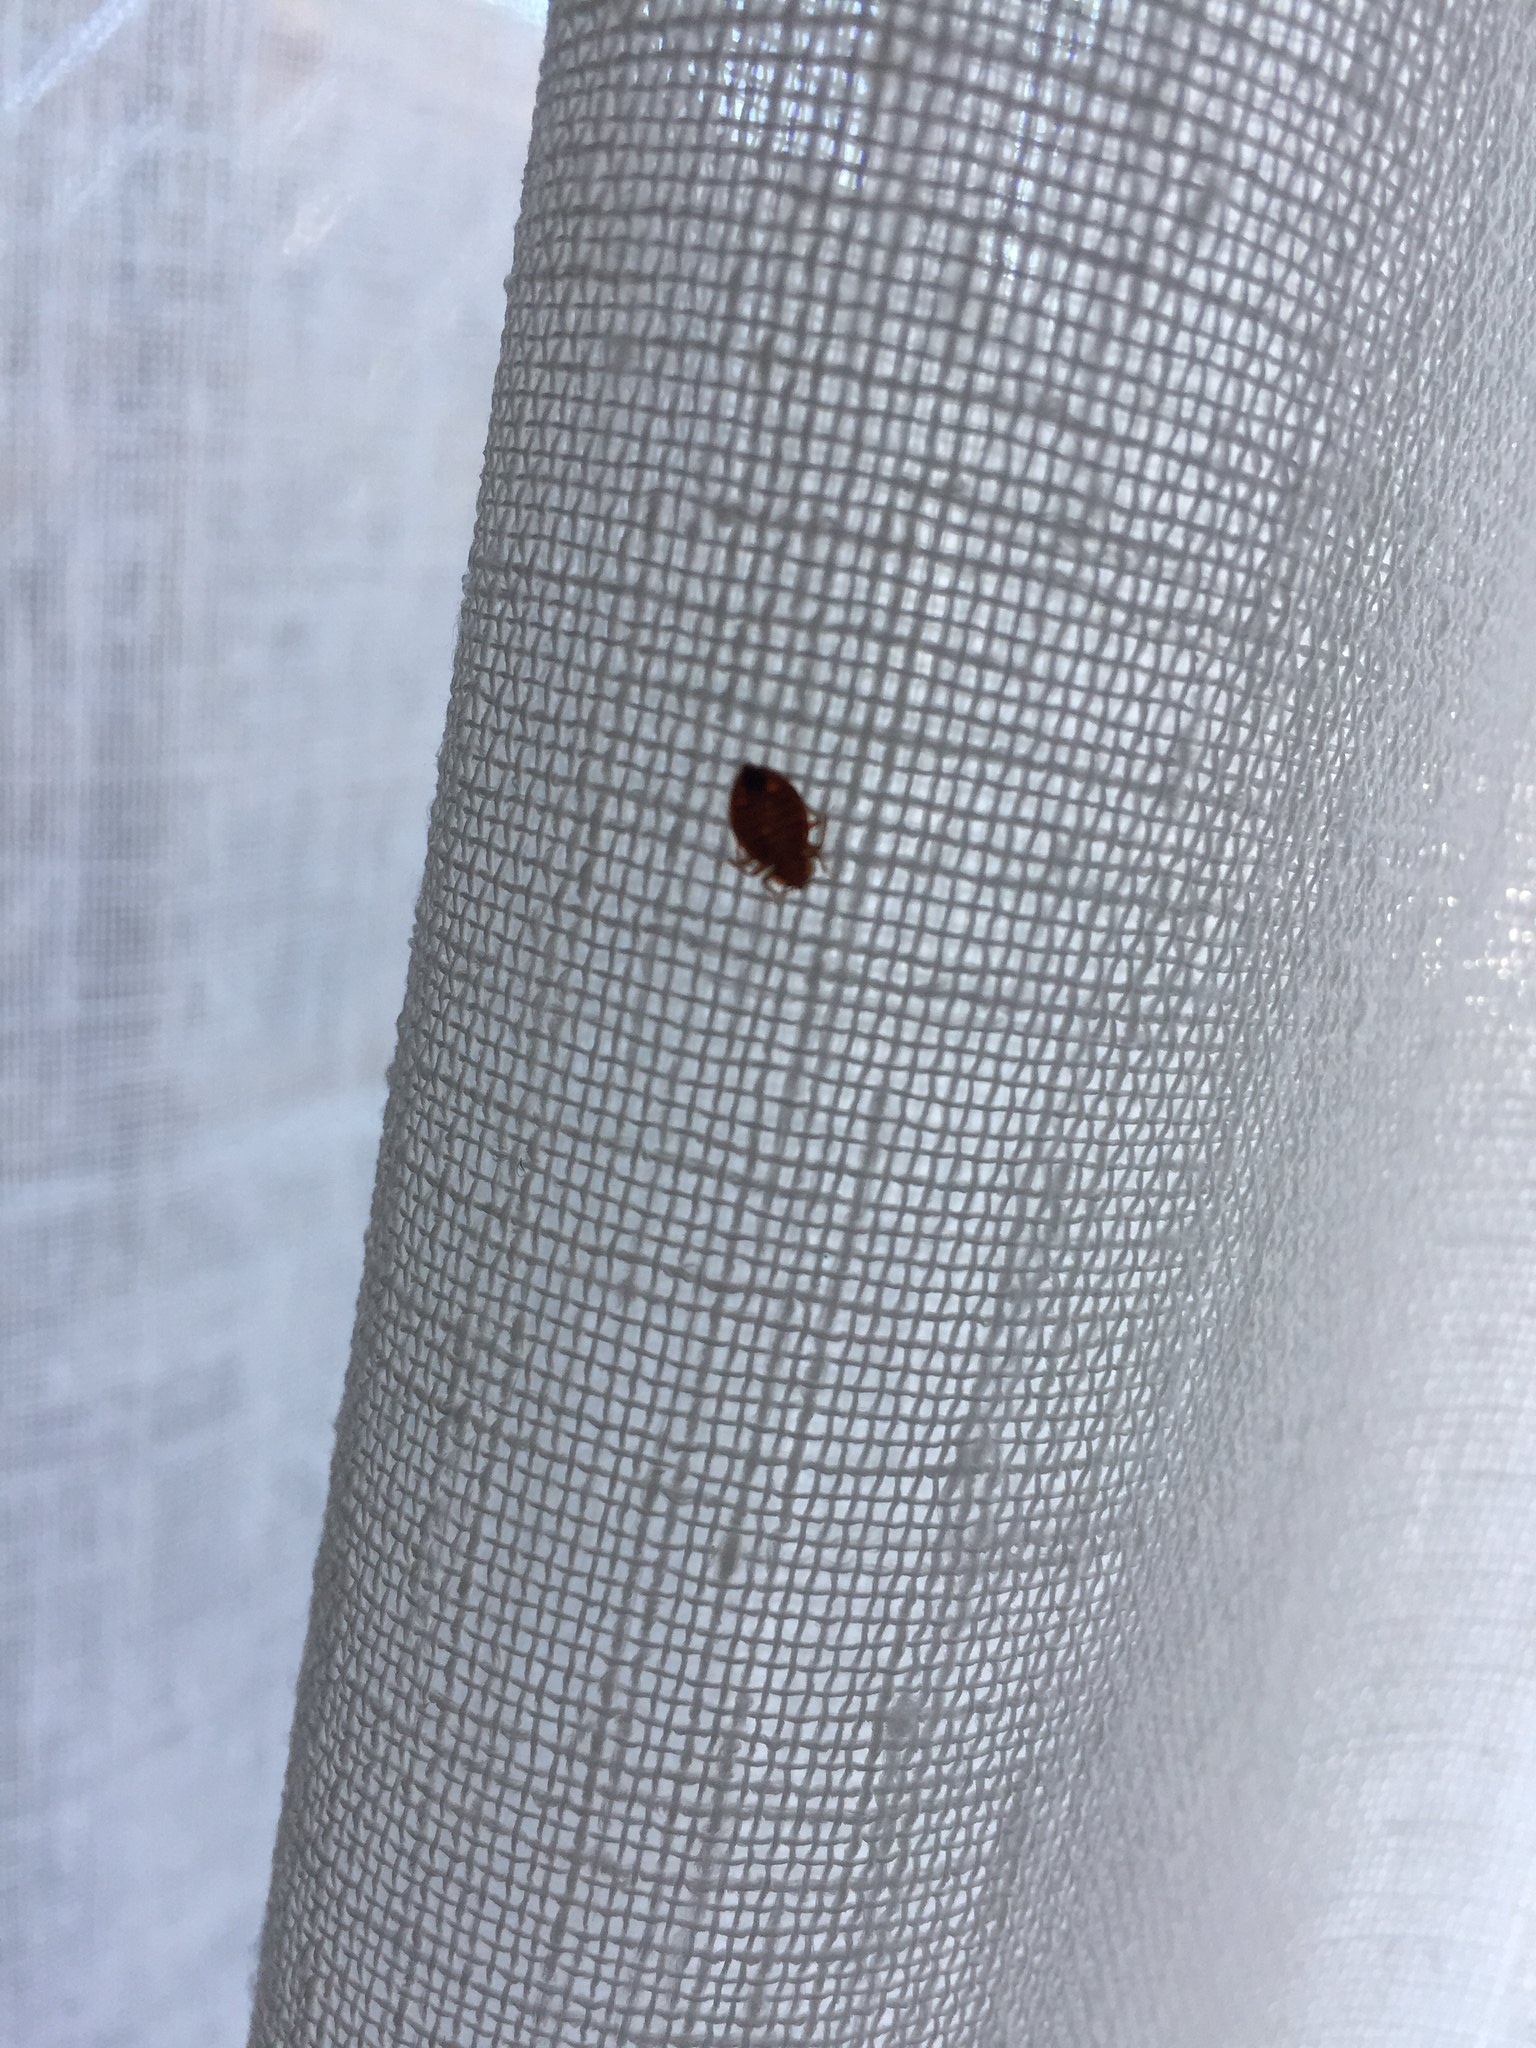 Bug ID/Advice Needed [a: adult male bed bug, carpet beetle larva ...